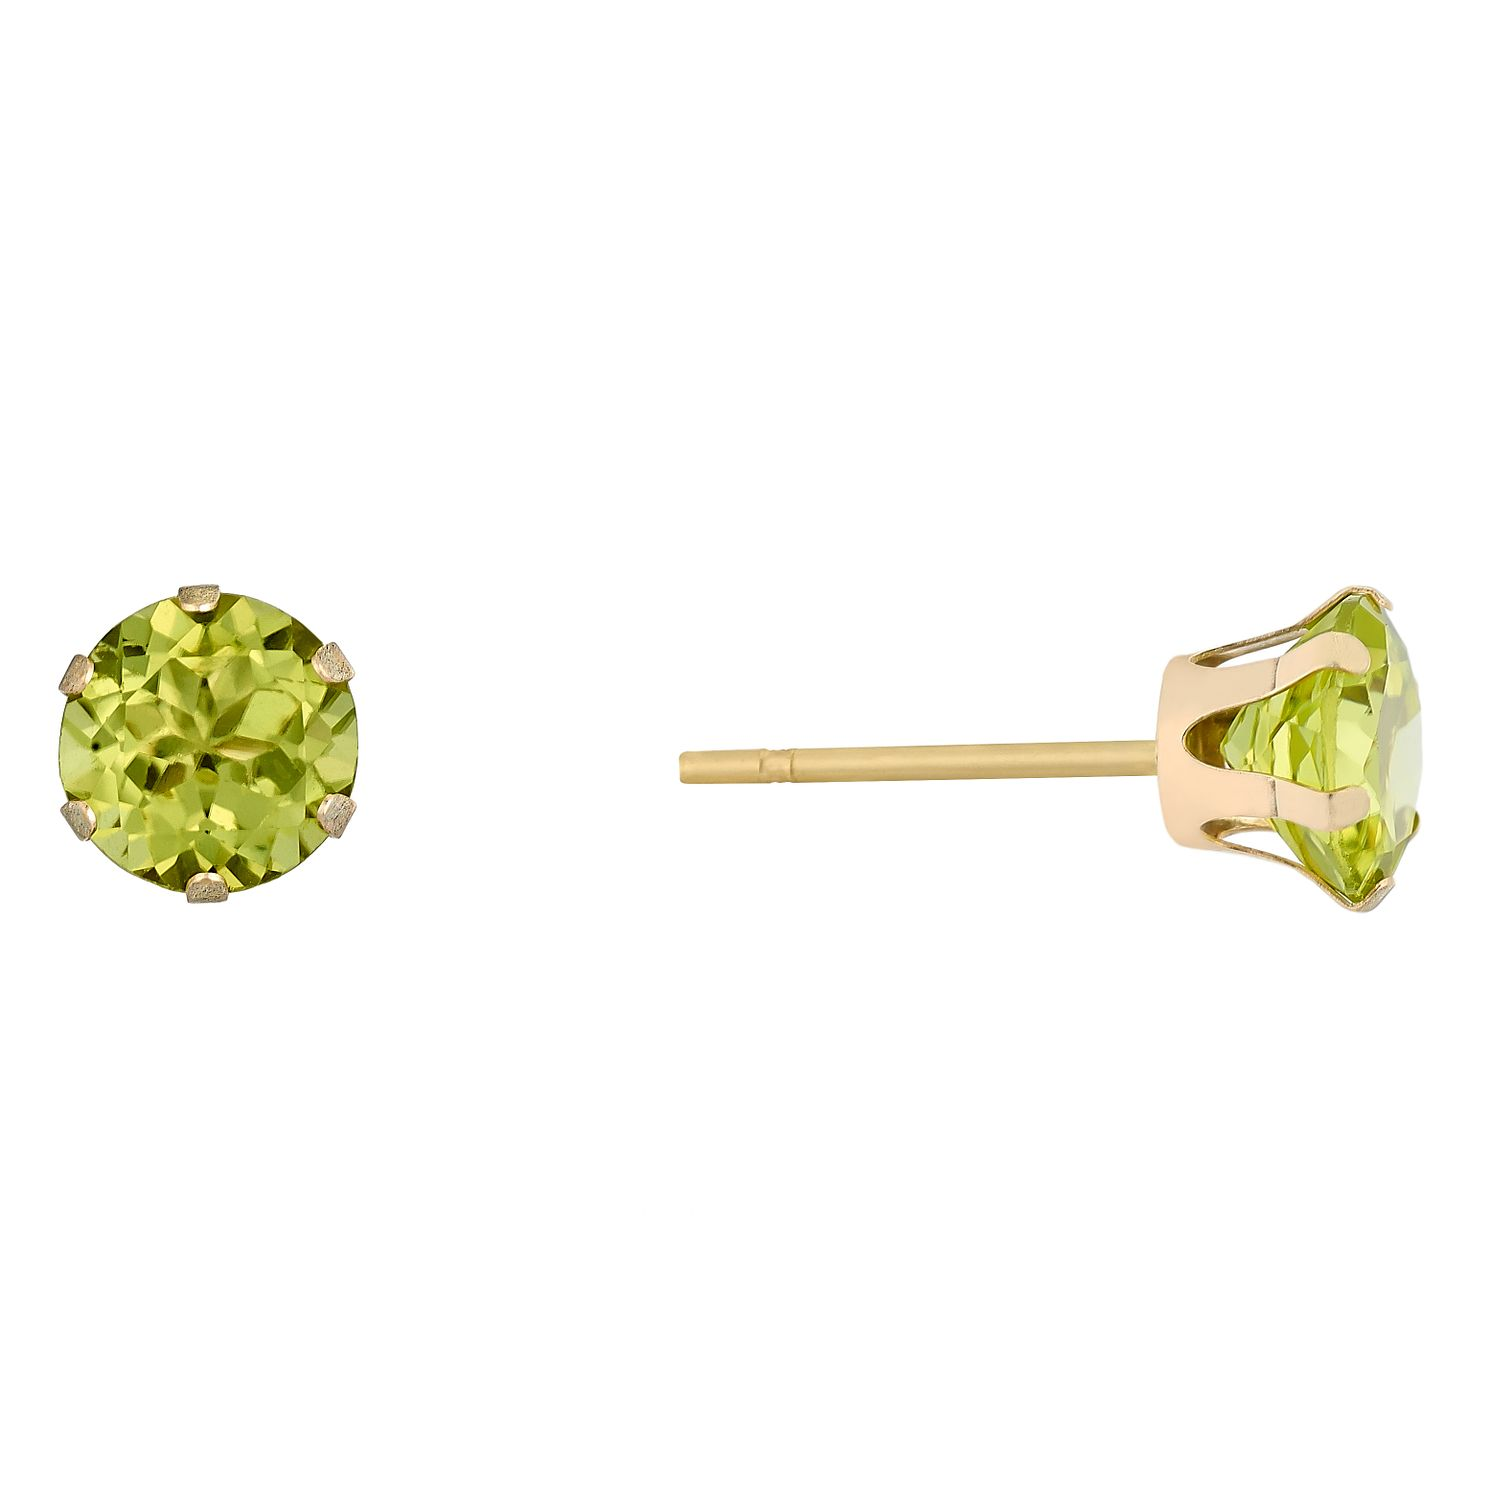 9ct Yellow Gold Peridot Stud Earrings - Product number 9020527